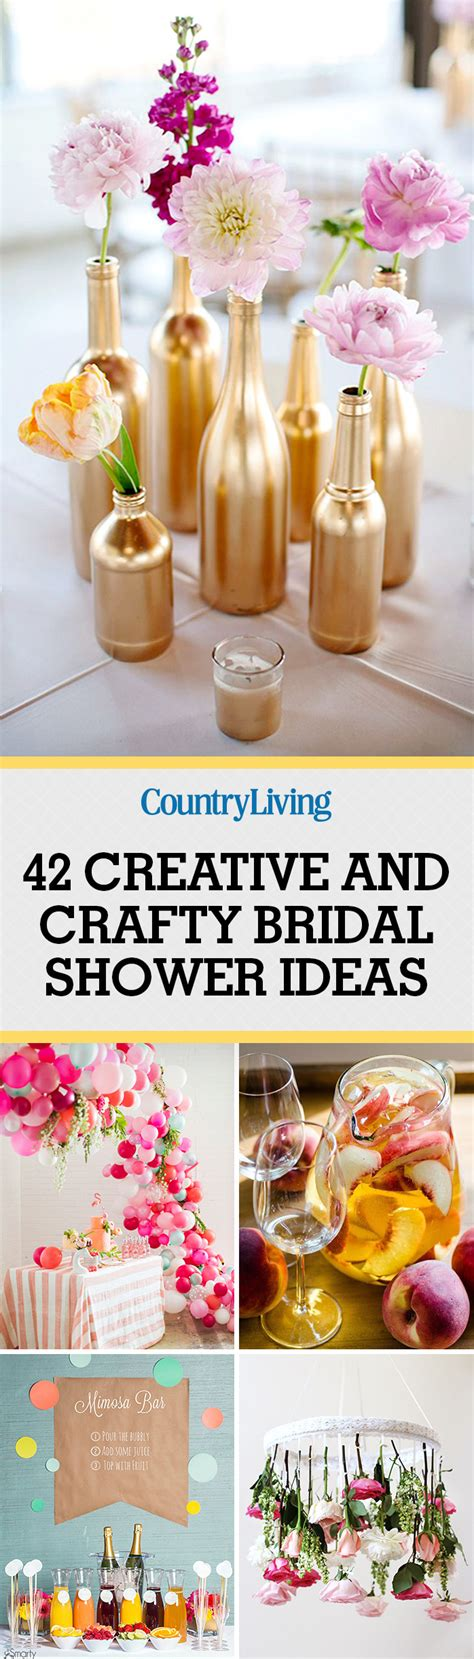 bridal shower ideas themes 50 best bridal shower ideas themes food and decorating ideas for wedding showers